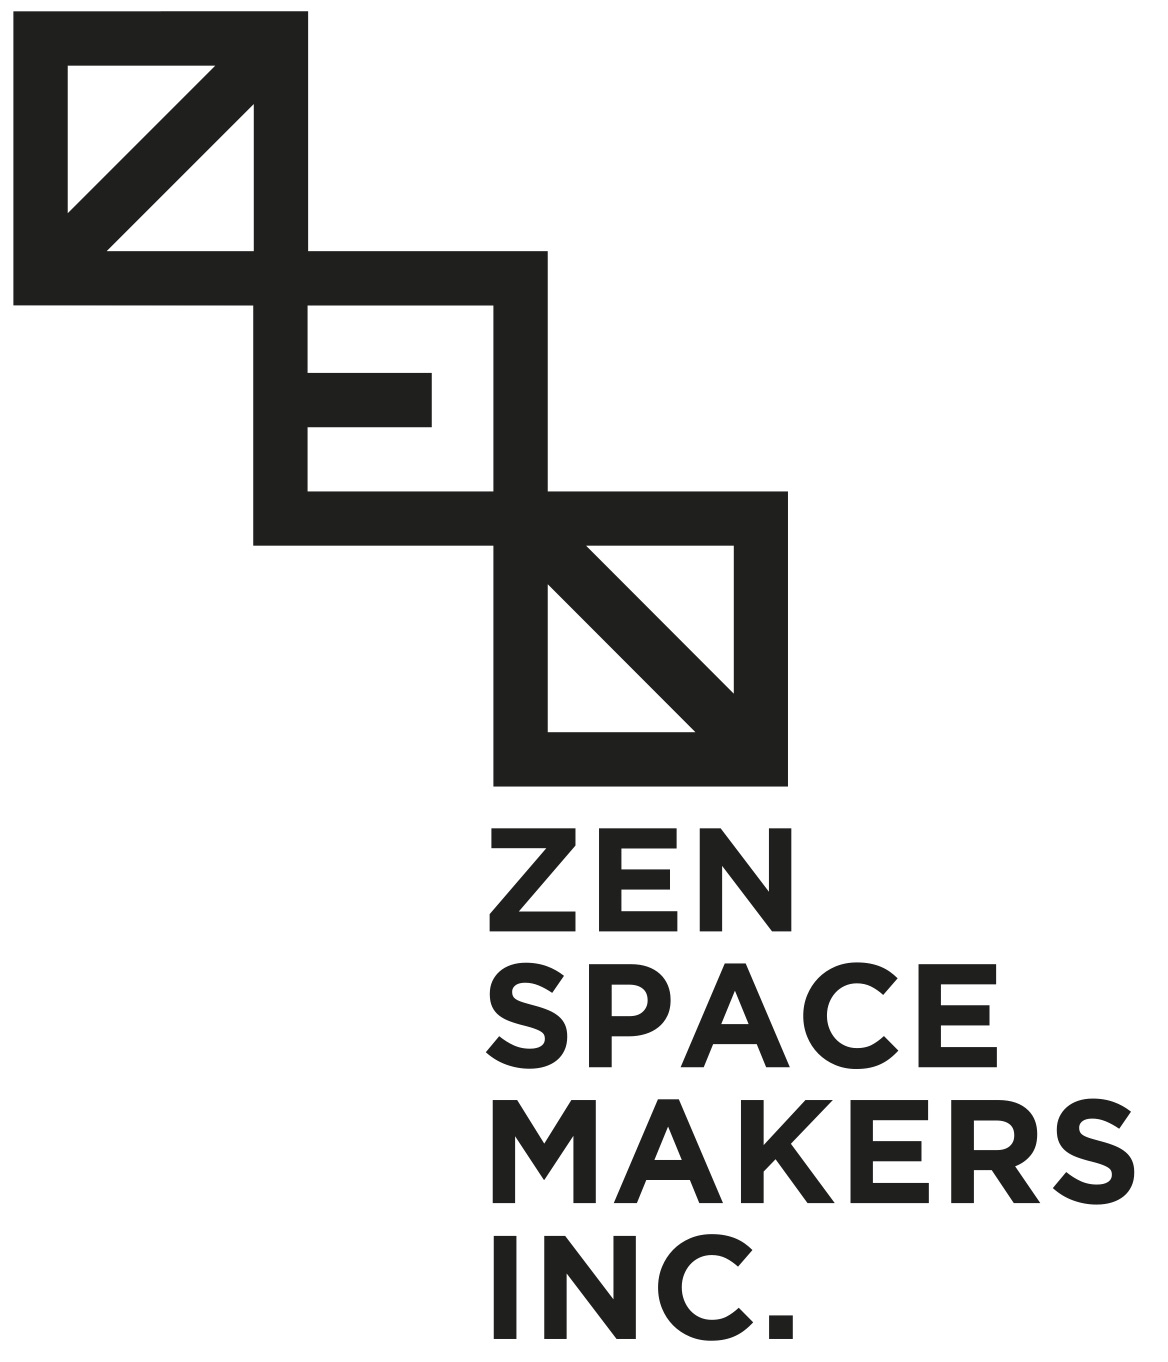 ZEN-Space-Makers_LOGO _ Jpg.jpg